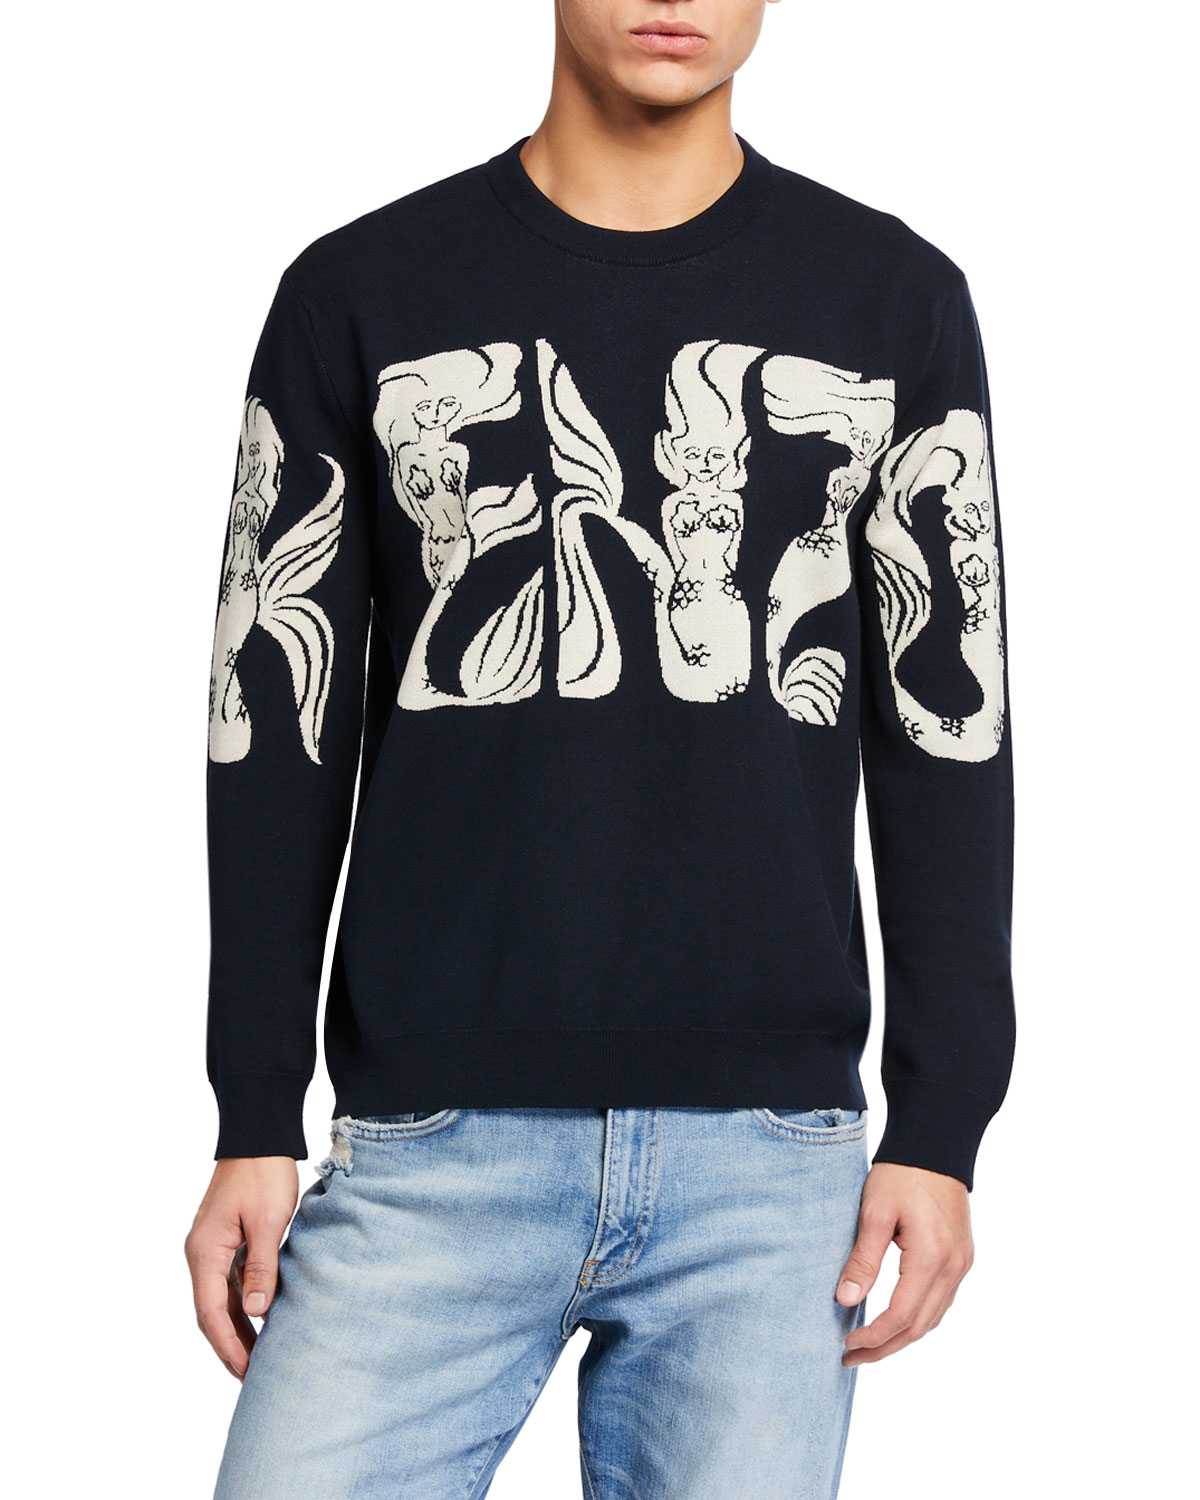 Kenzo Men's Mermaids Typographic Sweater